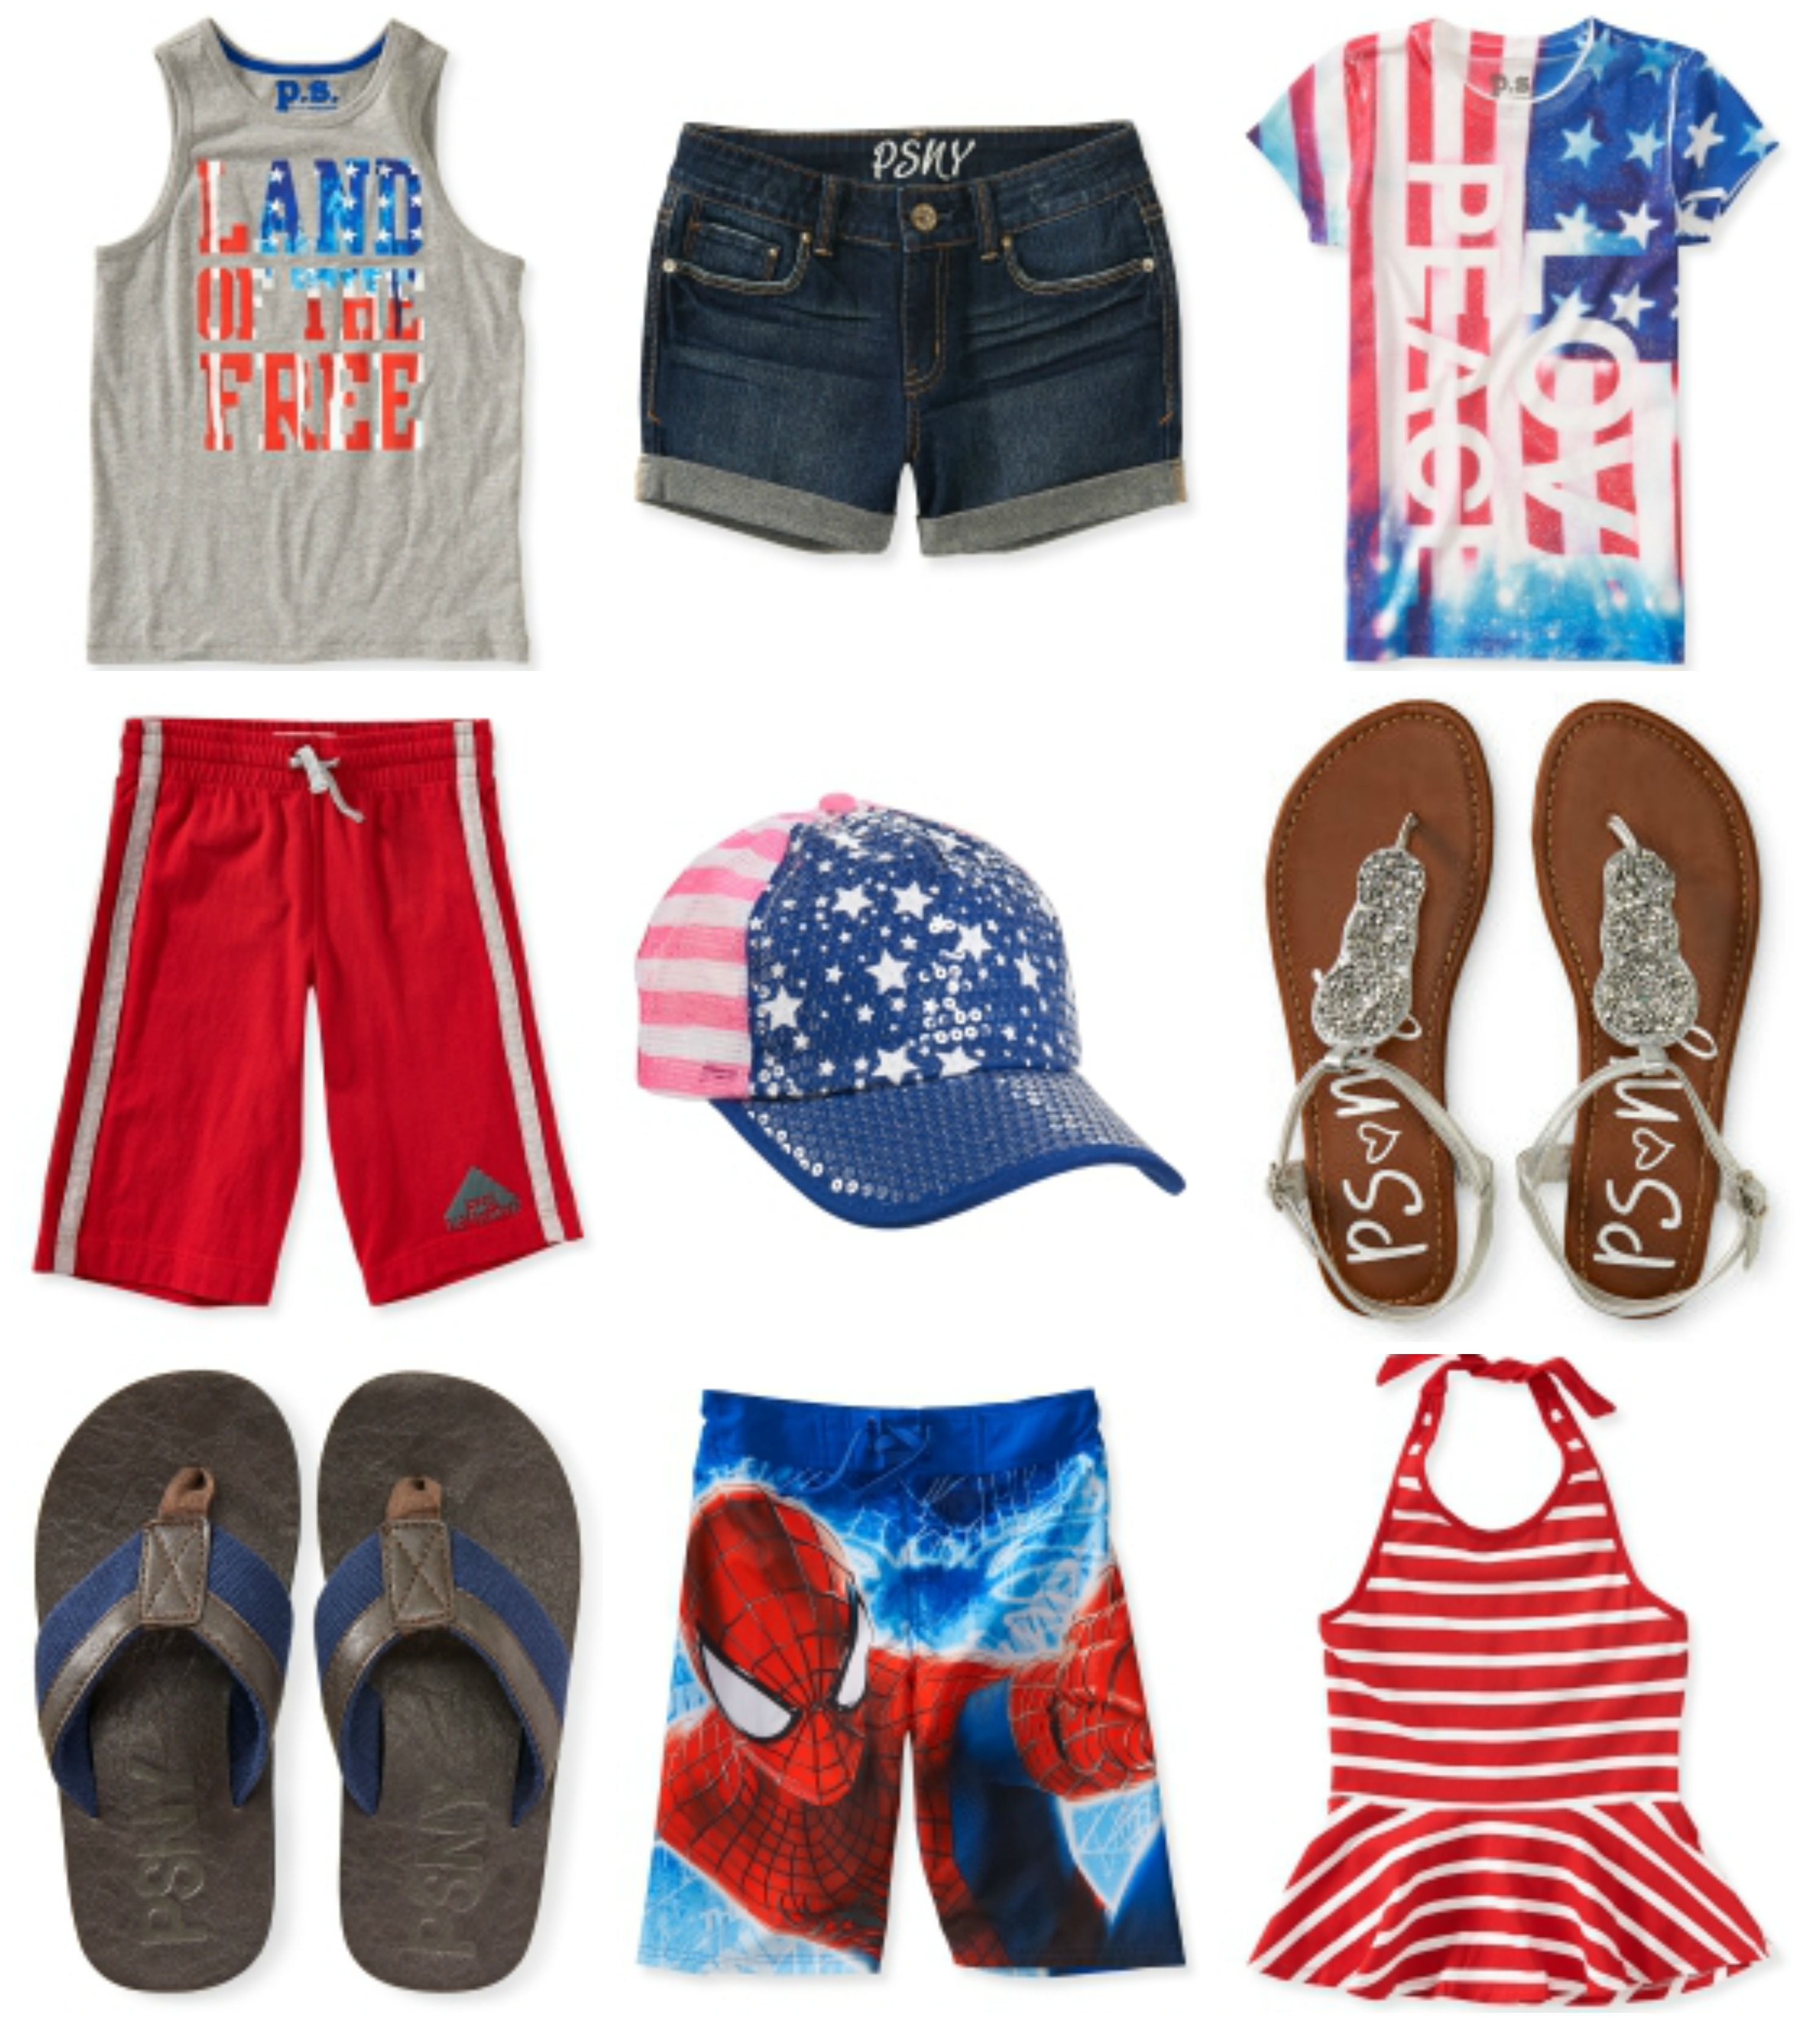 clothes from aeropostale | july 4th clothes, summer ...